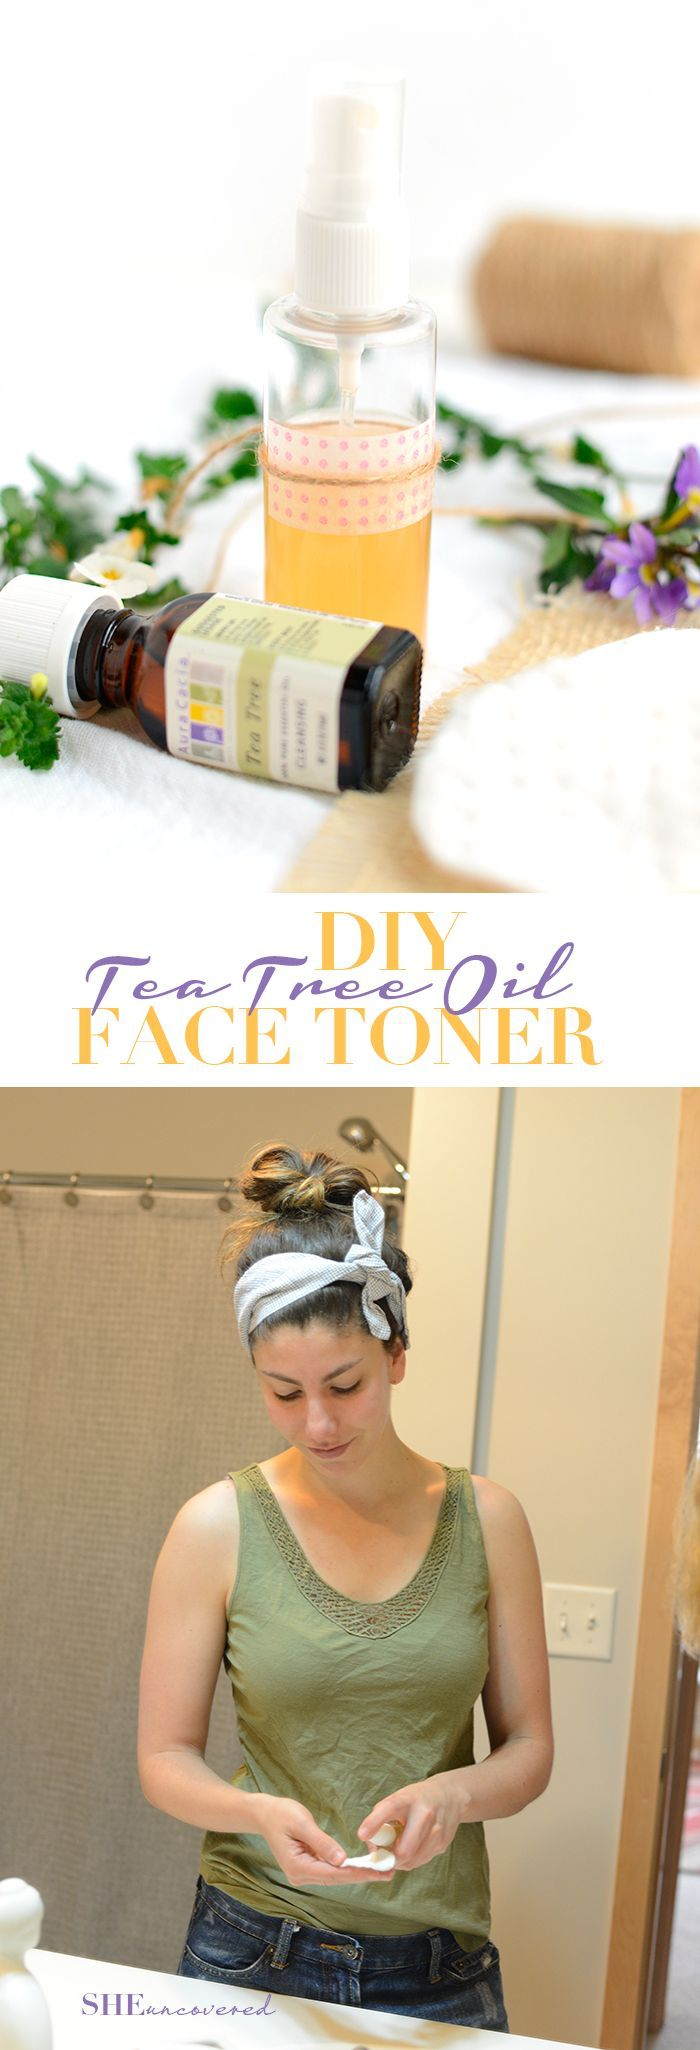 Just 3 simple ingredients is all you need to make this DIY Tea Tree Oil Face Toner {All-Natural!}. Most people skip toning their skin, but it is so important! Learn why and how to make your own natural version here!